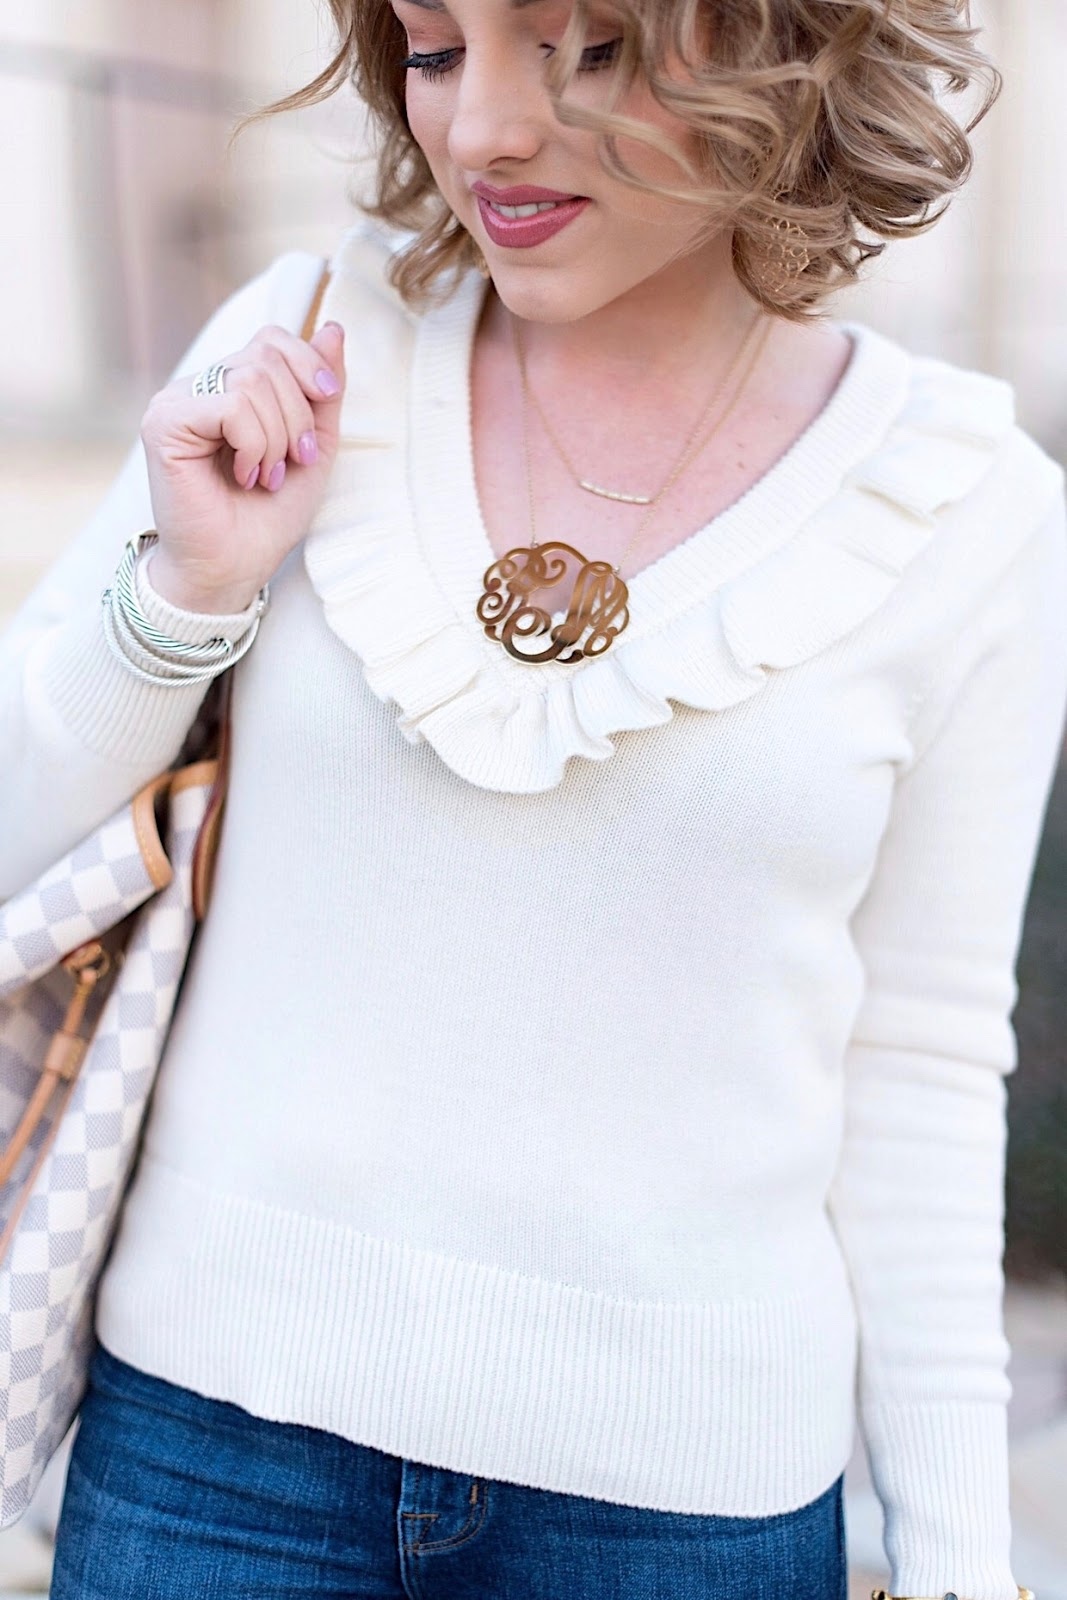 J.Crew Ruffle Sweater - Something Delightful Blog